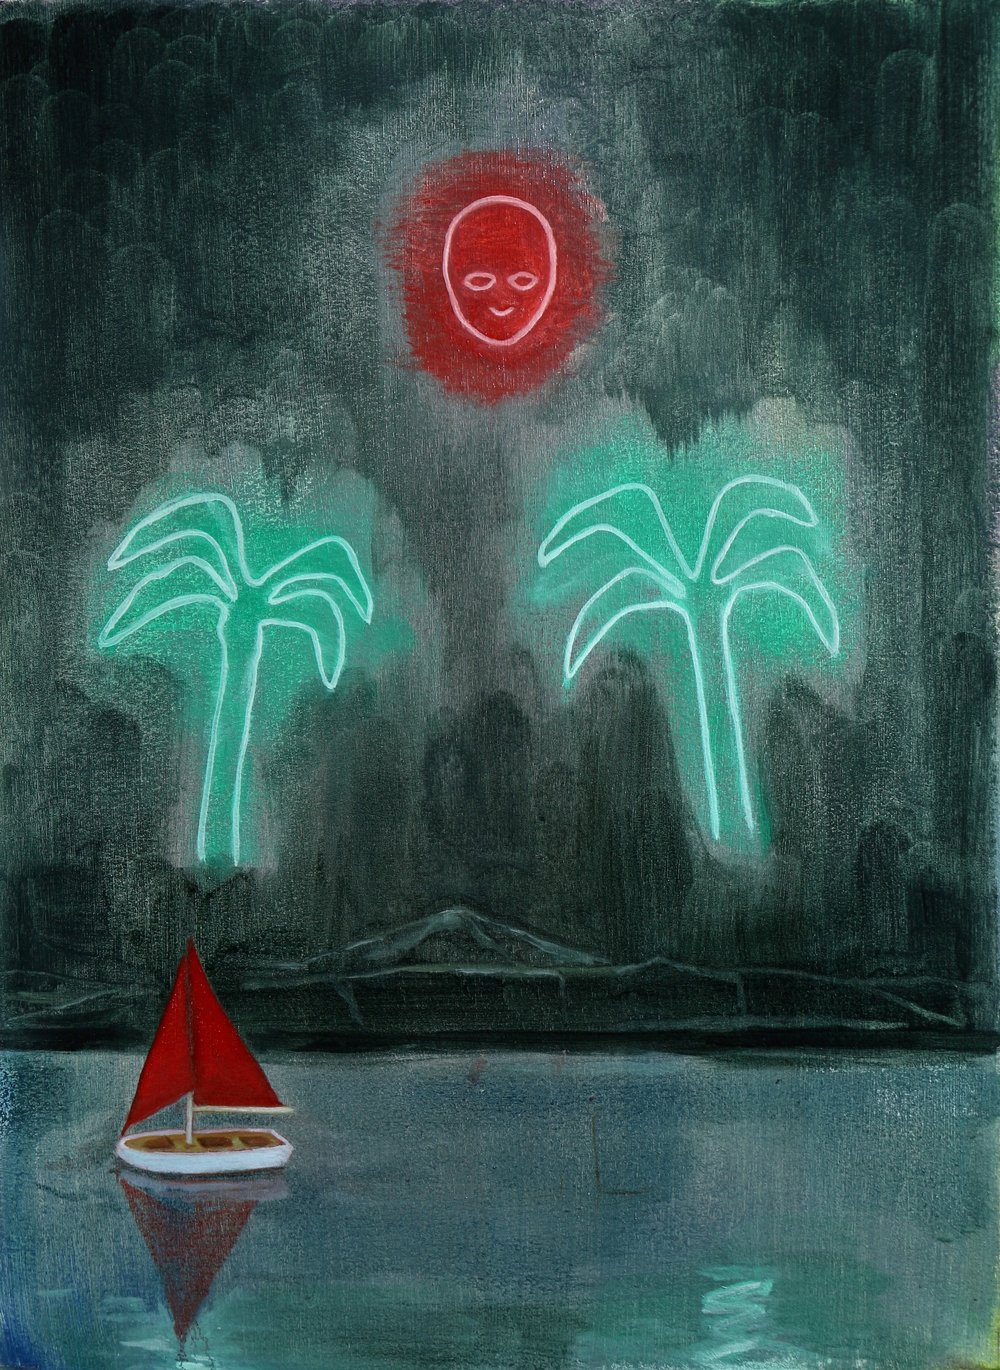 Neon Island, Oil on paper, 40x30cm, 2017